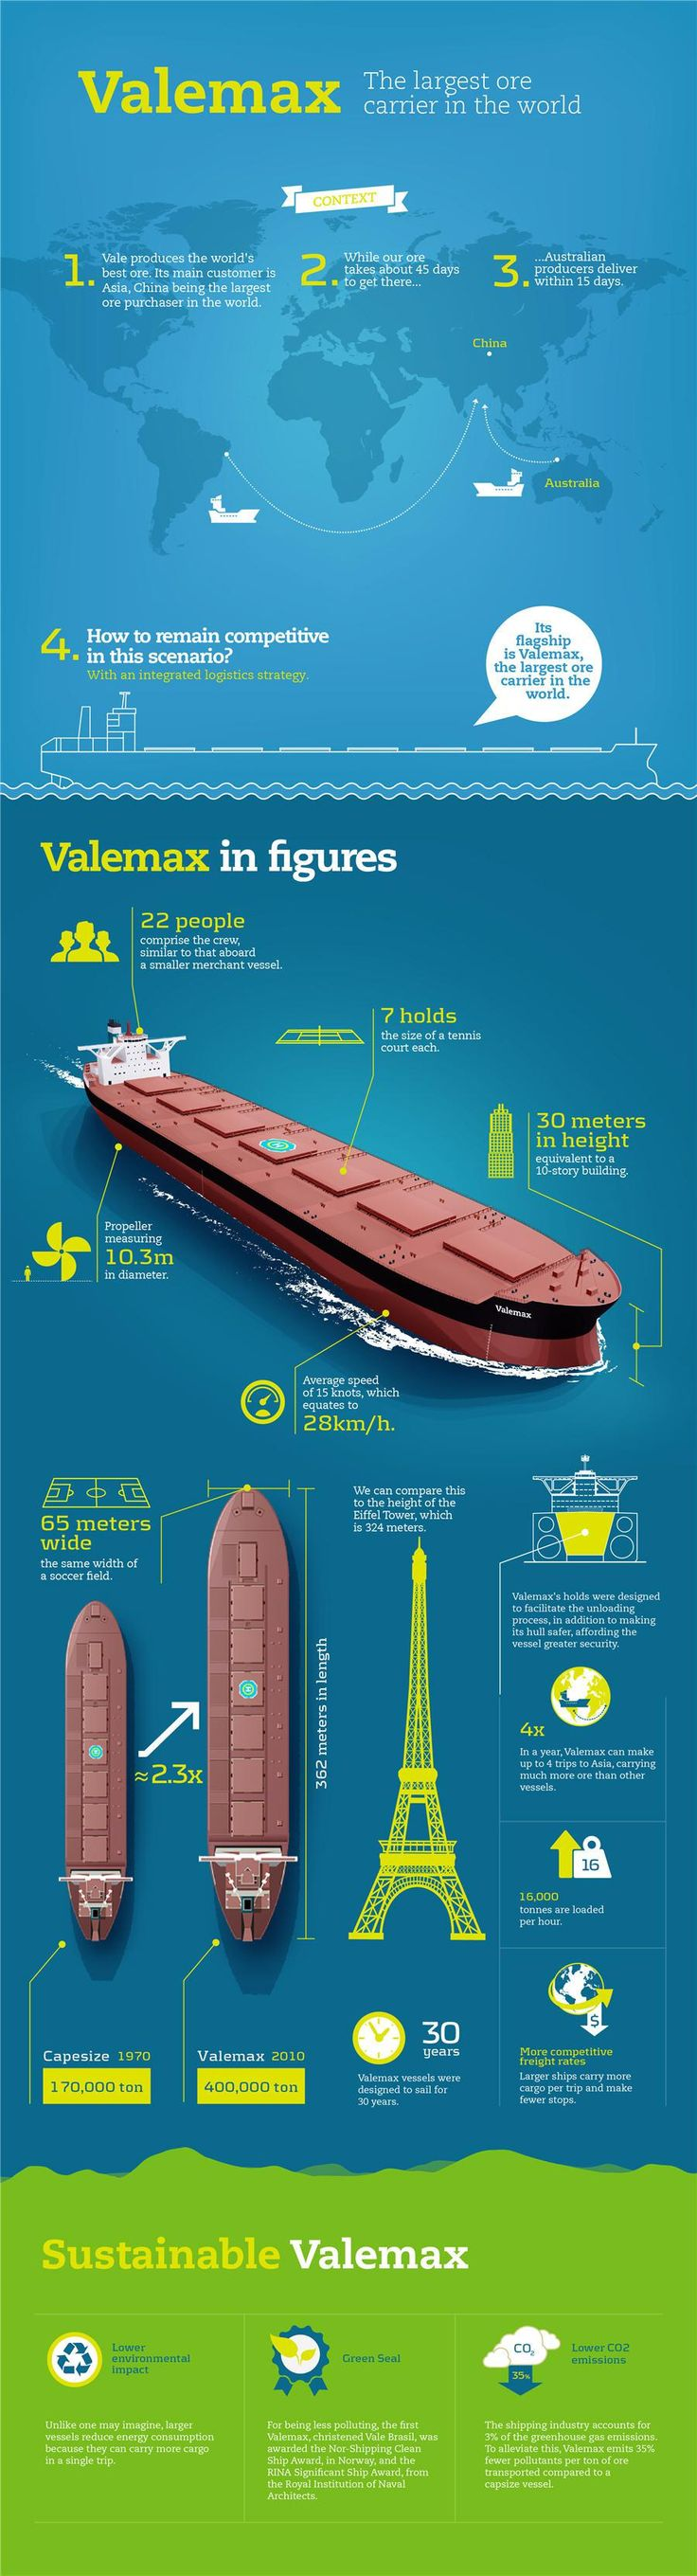 Infographic Valemax The Largest Ore Carrier in The World | Infographics Creator